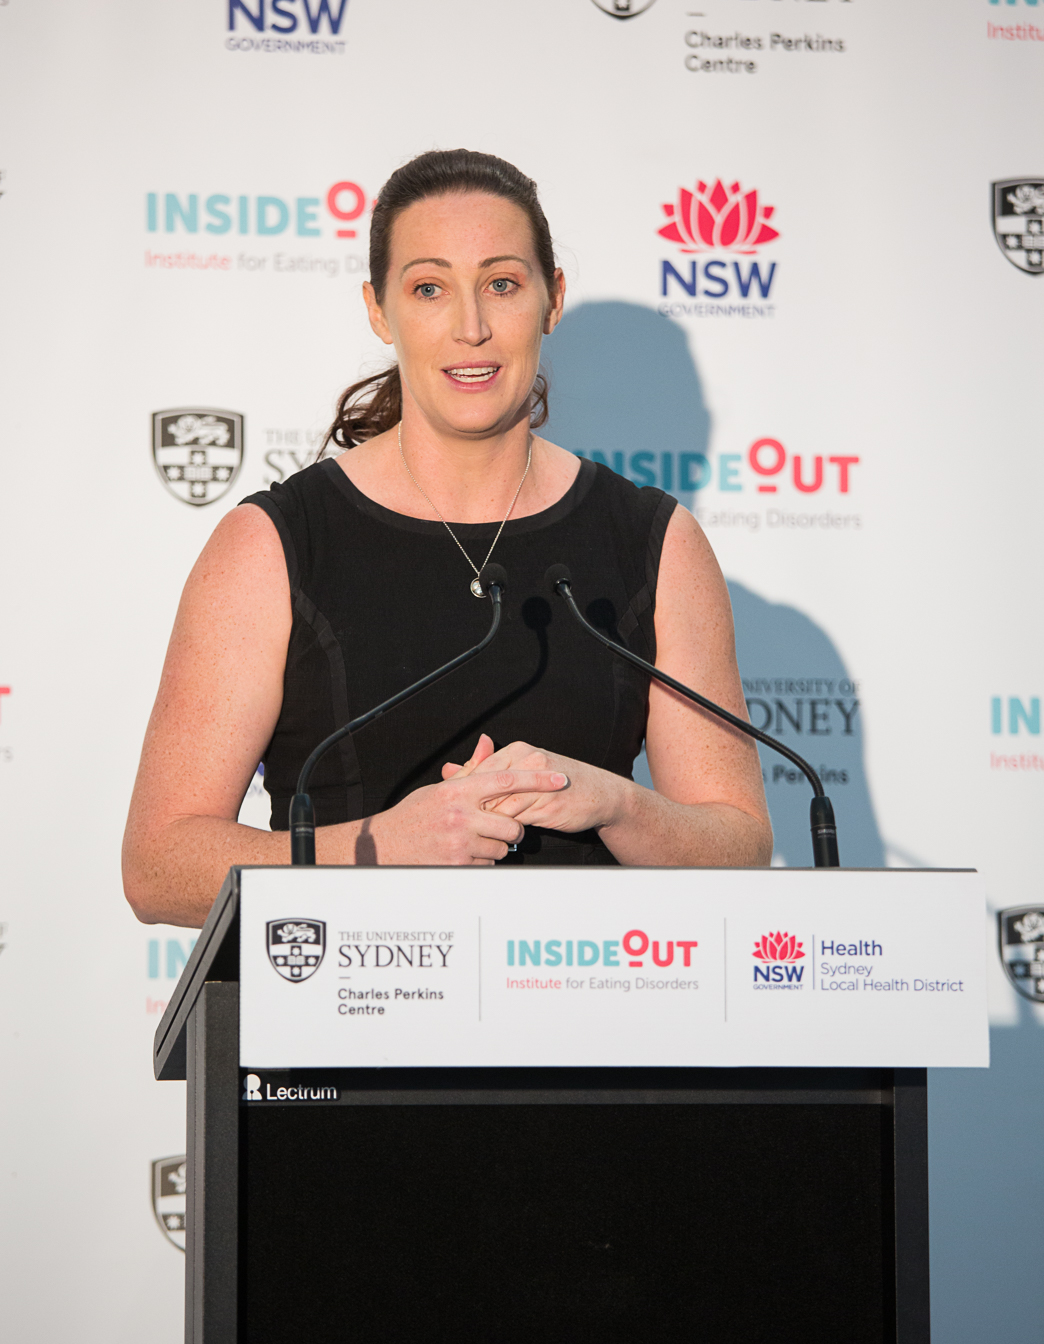 Olympic hurdler and InsideOut Institute ambassador Jana Pittman at the launch of the InsideOut Institute